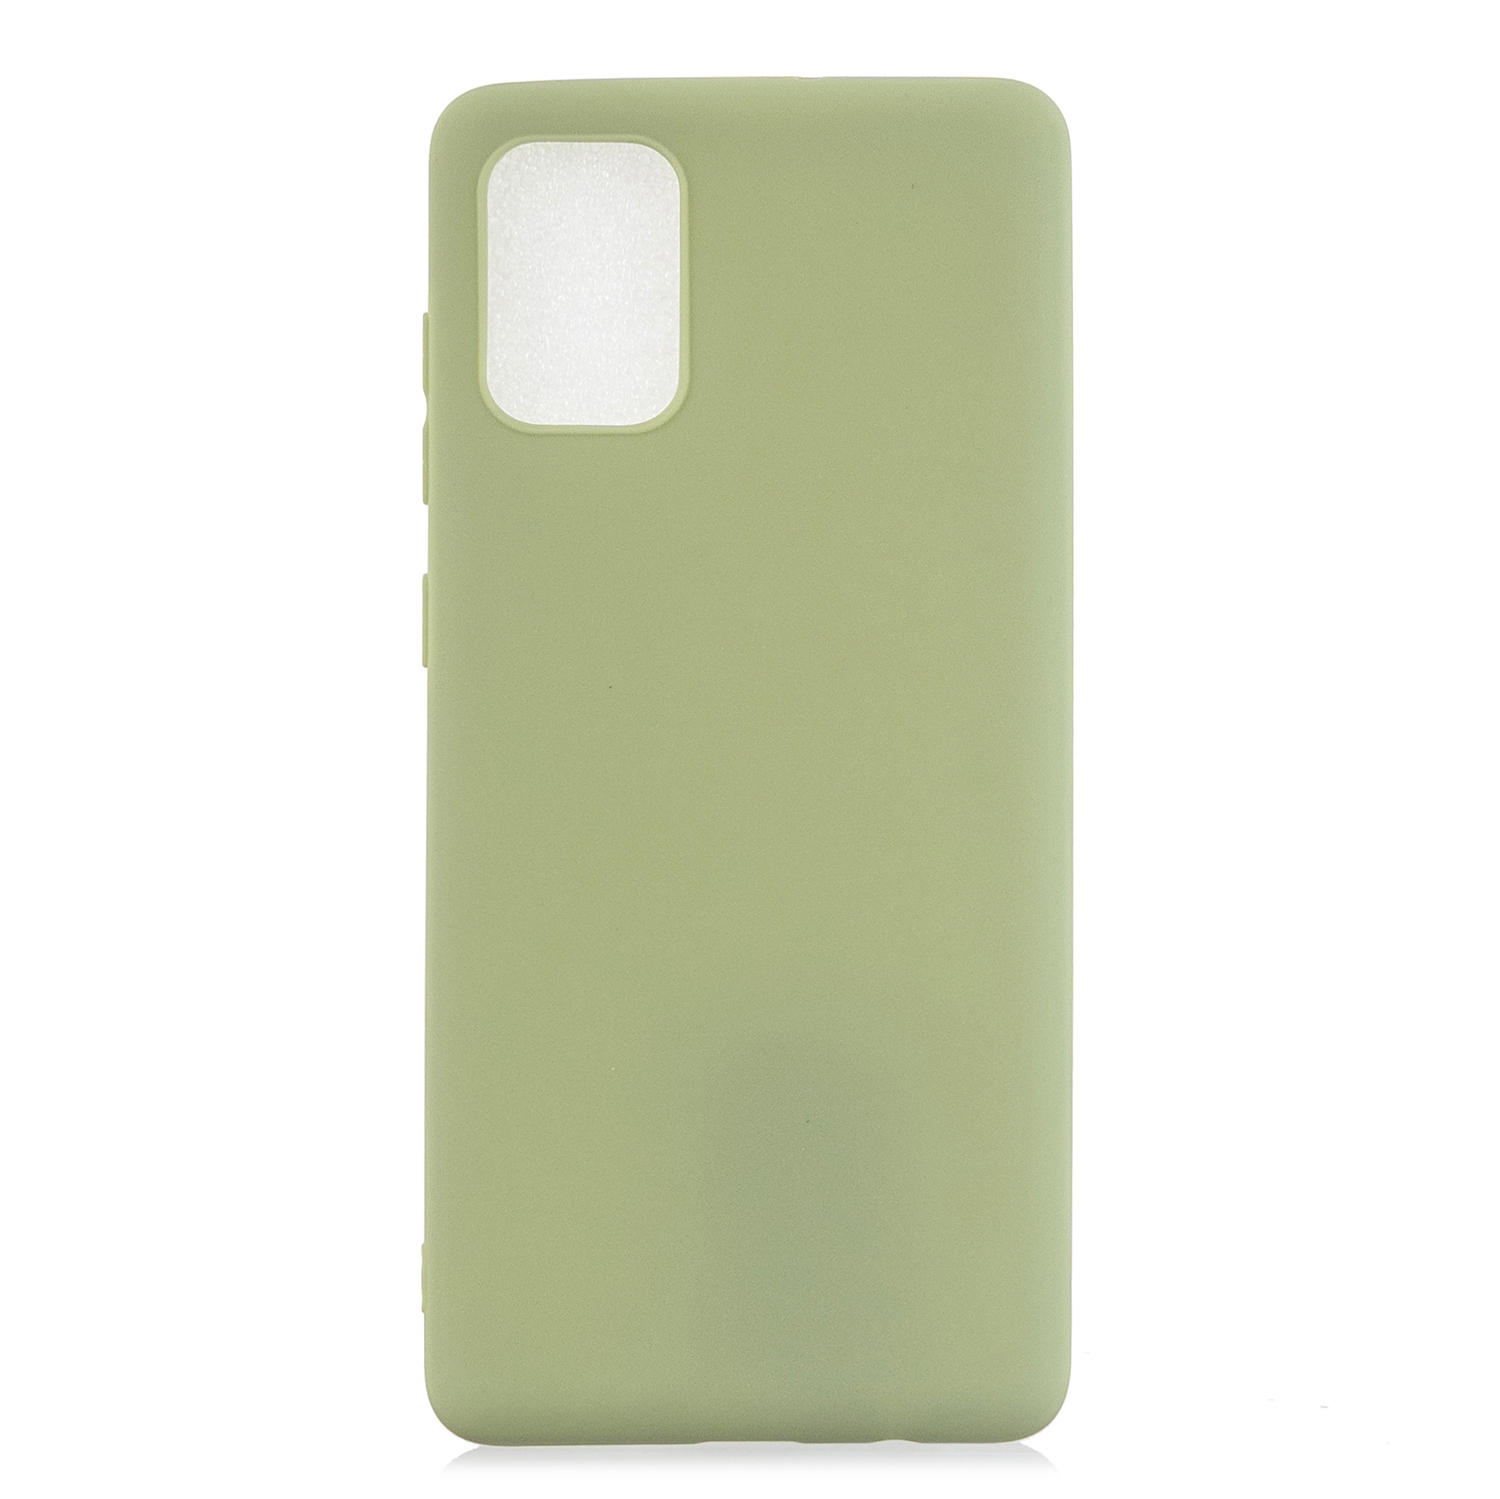 For Samsung A01/ A11/A21/A41/A51/A71/A81/A91 Mobile Phone Case Lovely Candy Color Matte TPU Anti-scratch Non-slip Protective Cover Back Case 10 beans green